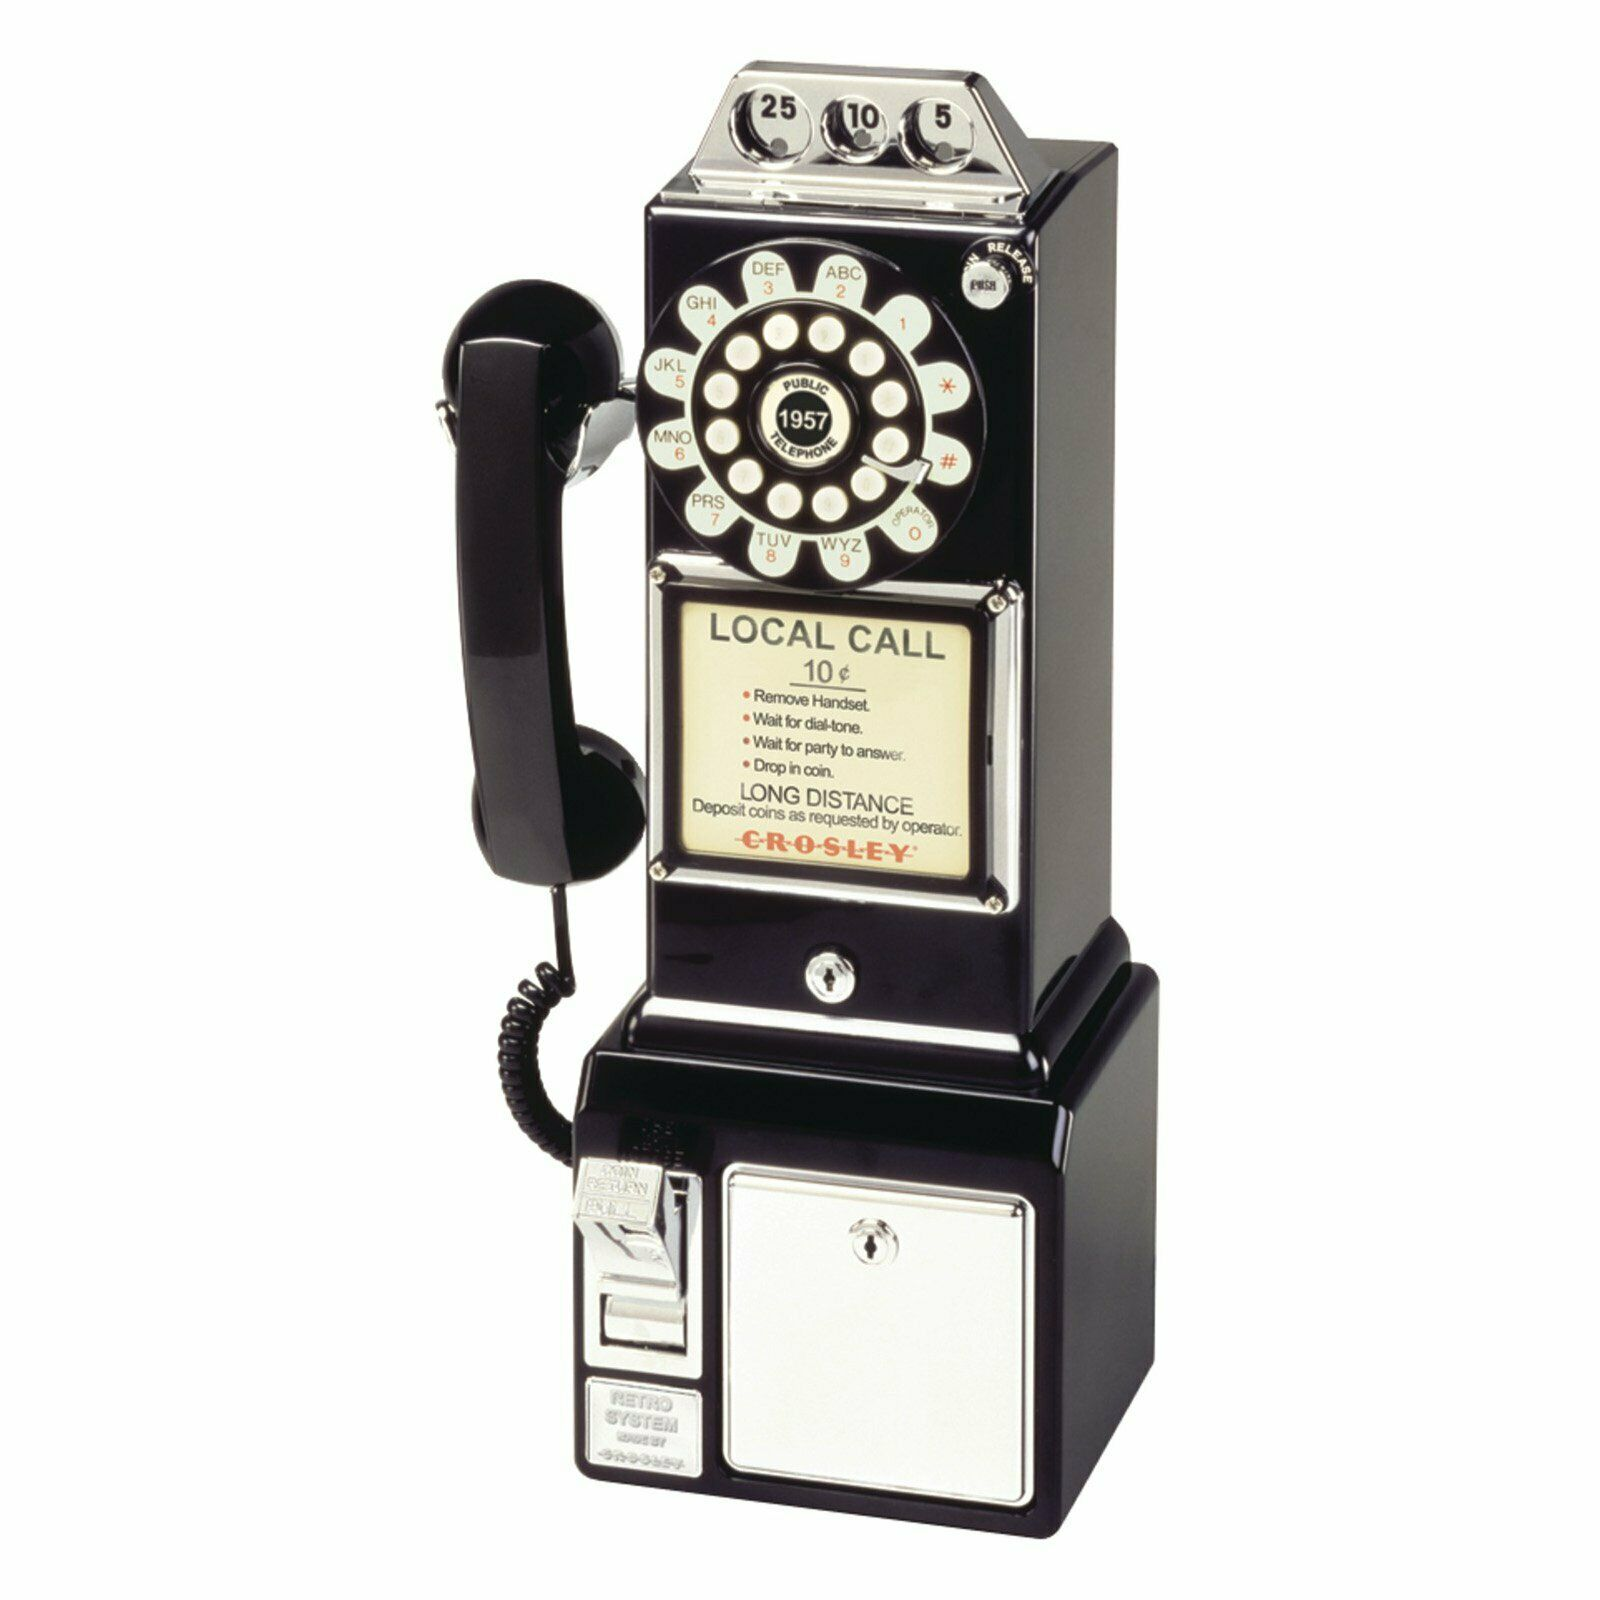 Vintage Dial Payphone Rotary Style Retro Look Coin Bank Dropping Telephone Black